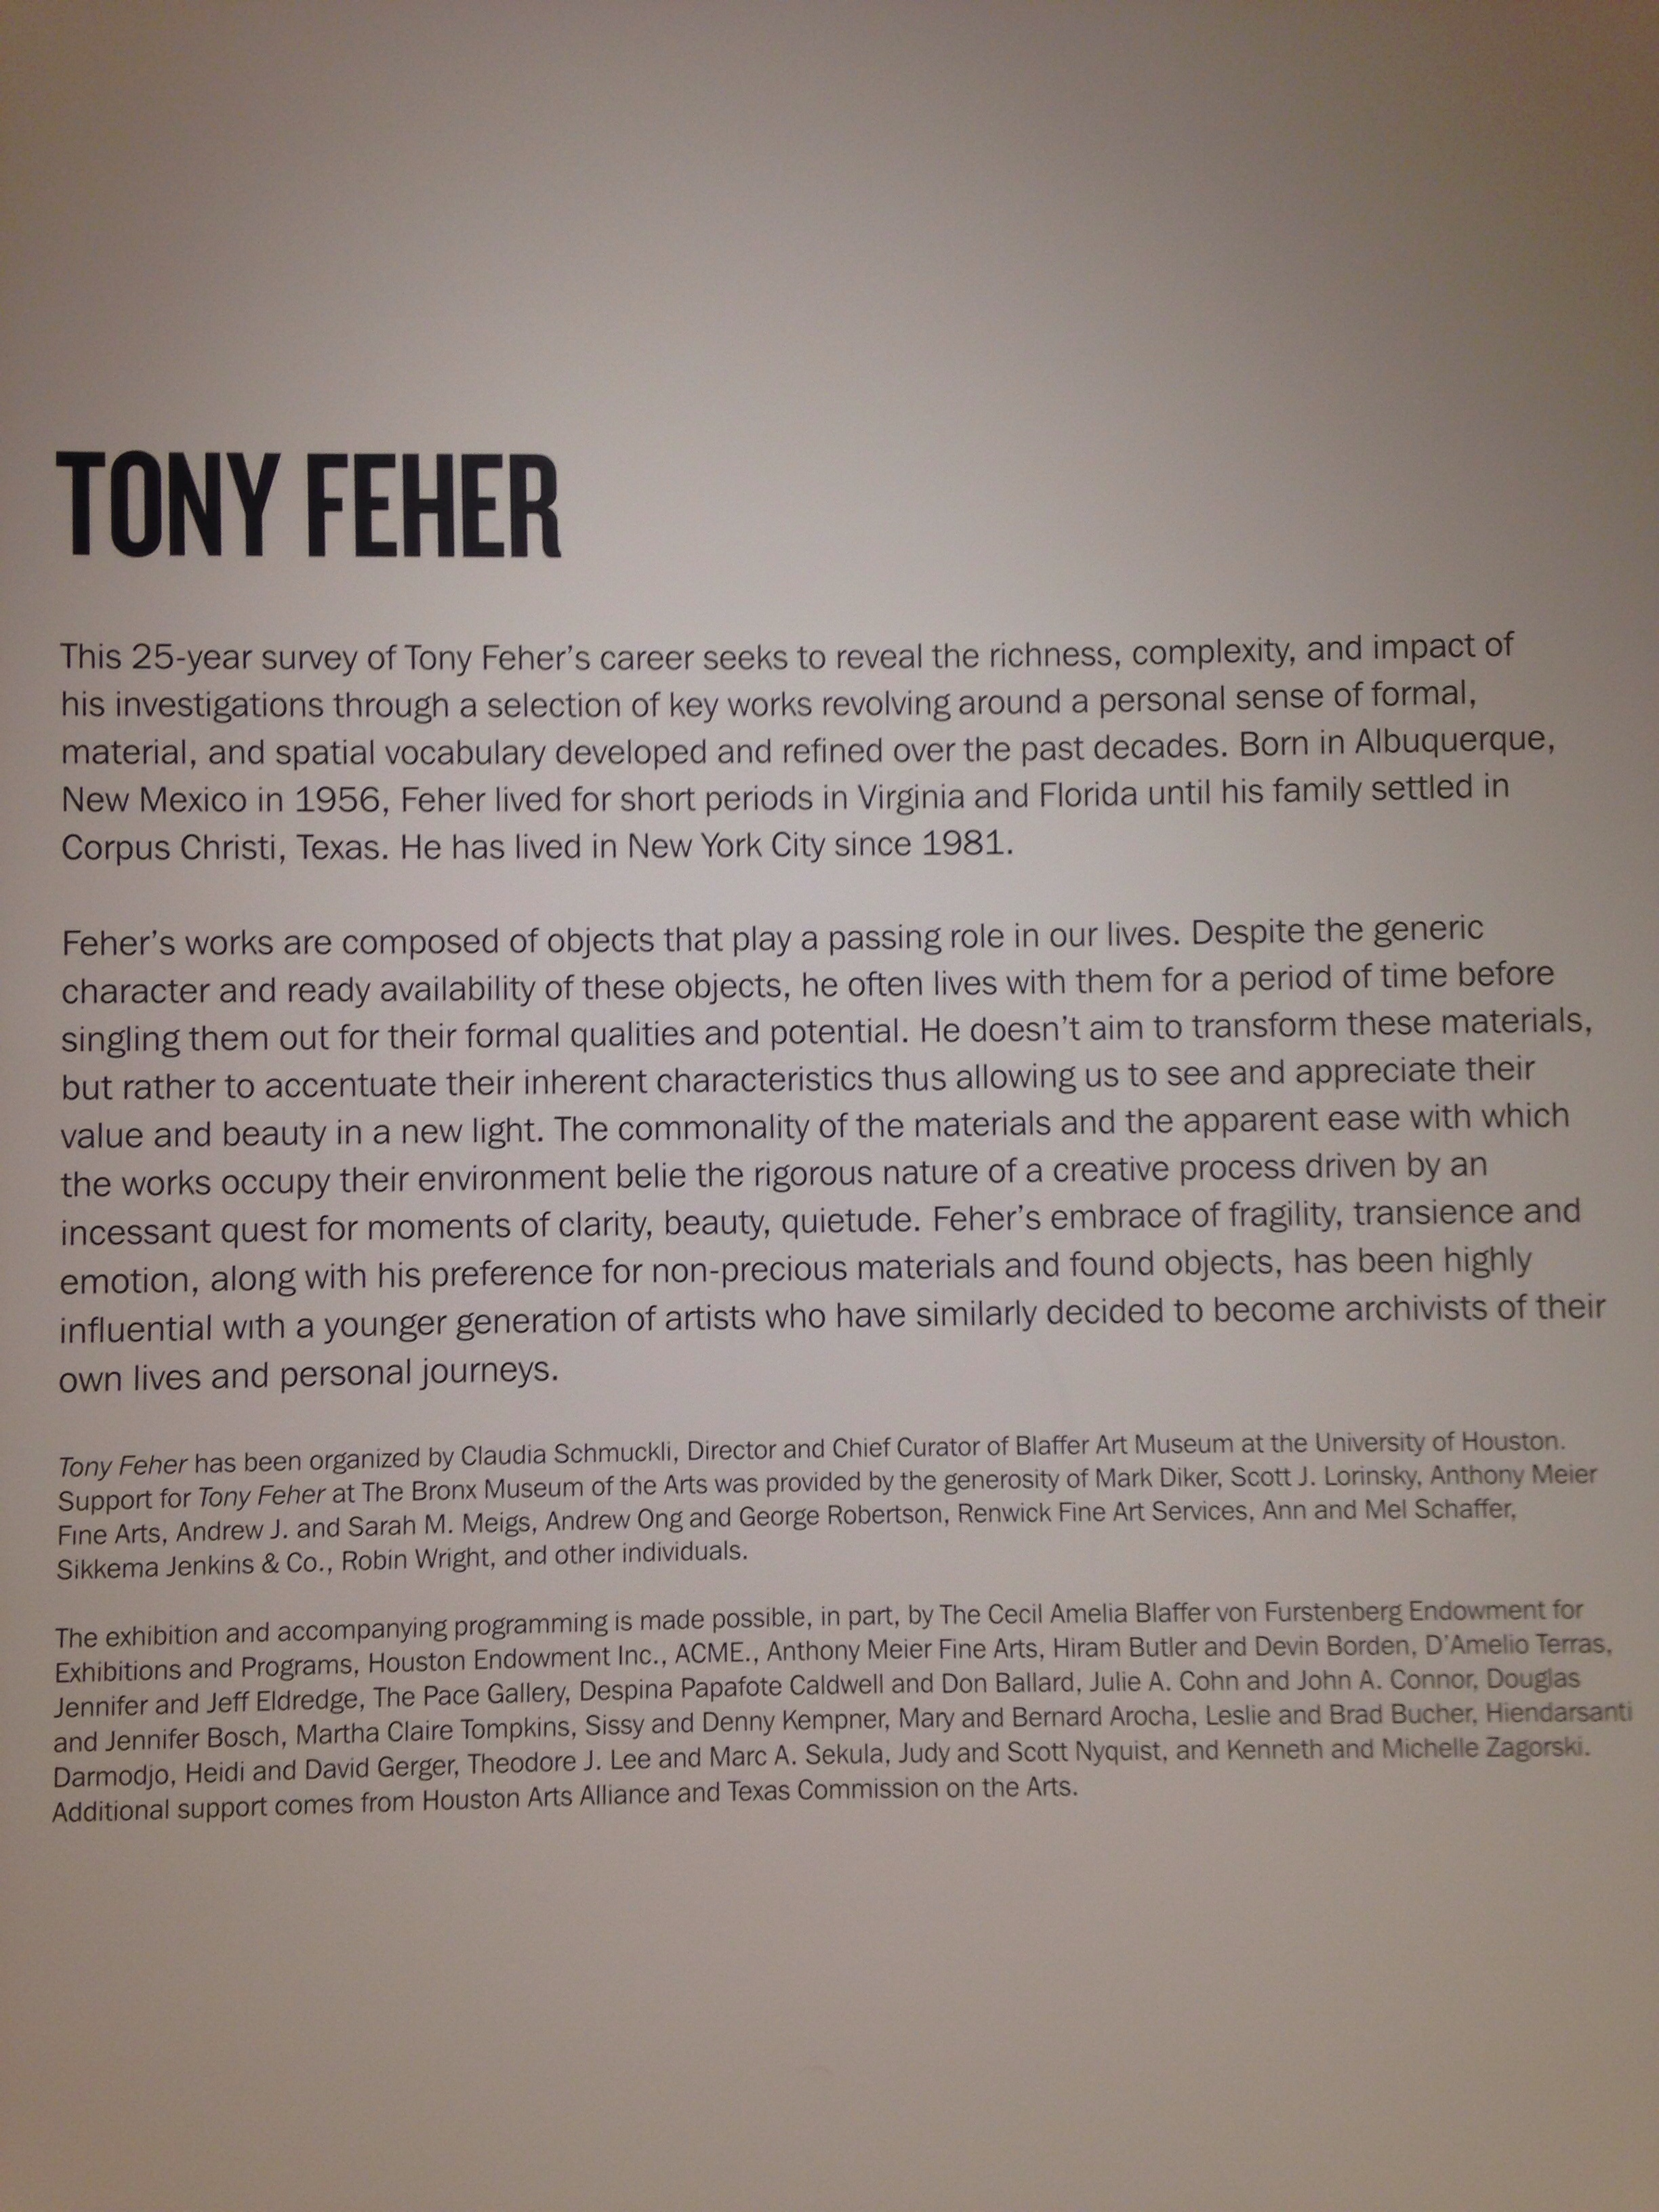 The Tony Feher exhibit was absolutely refreshing. It really made me think about everyday materials as art. This exhibit was all about using/recycling found materials as art. So many possibilities...